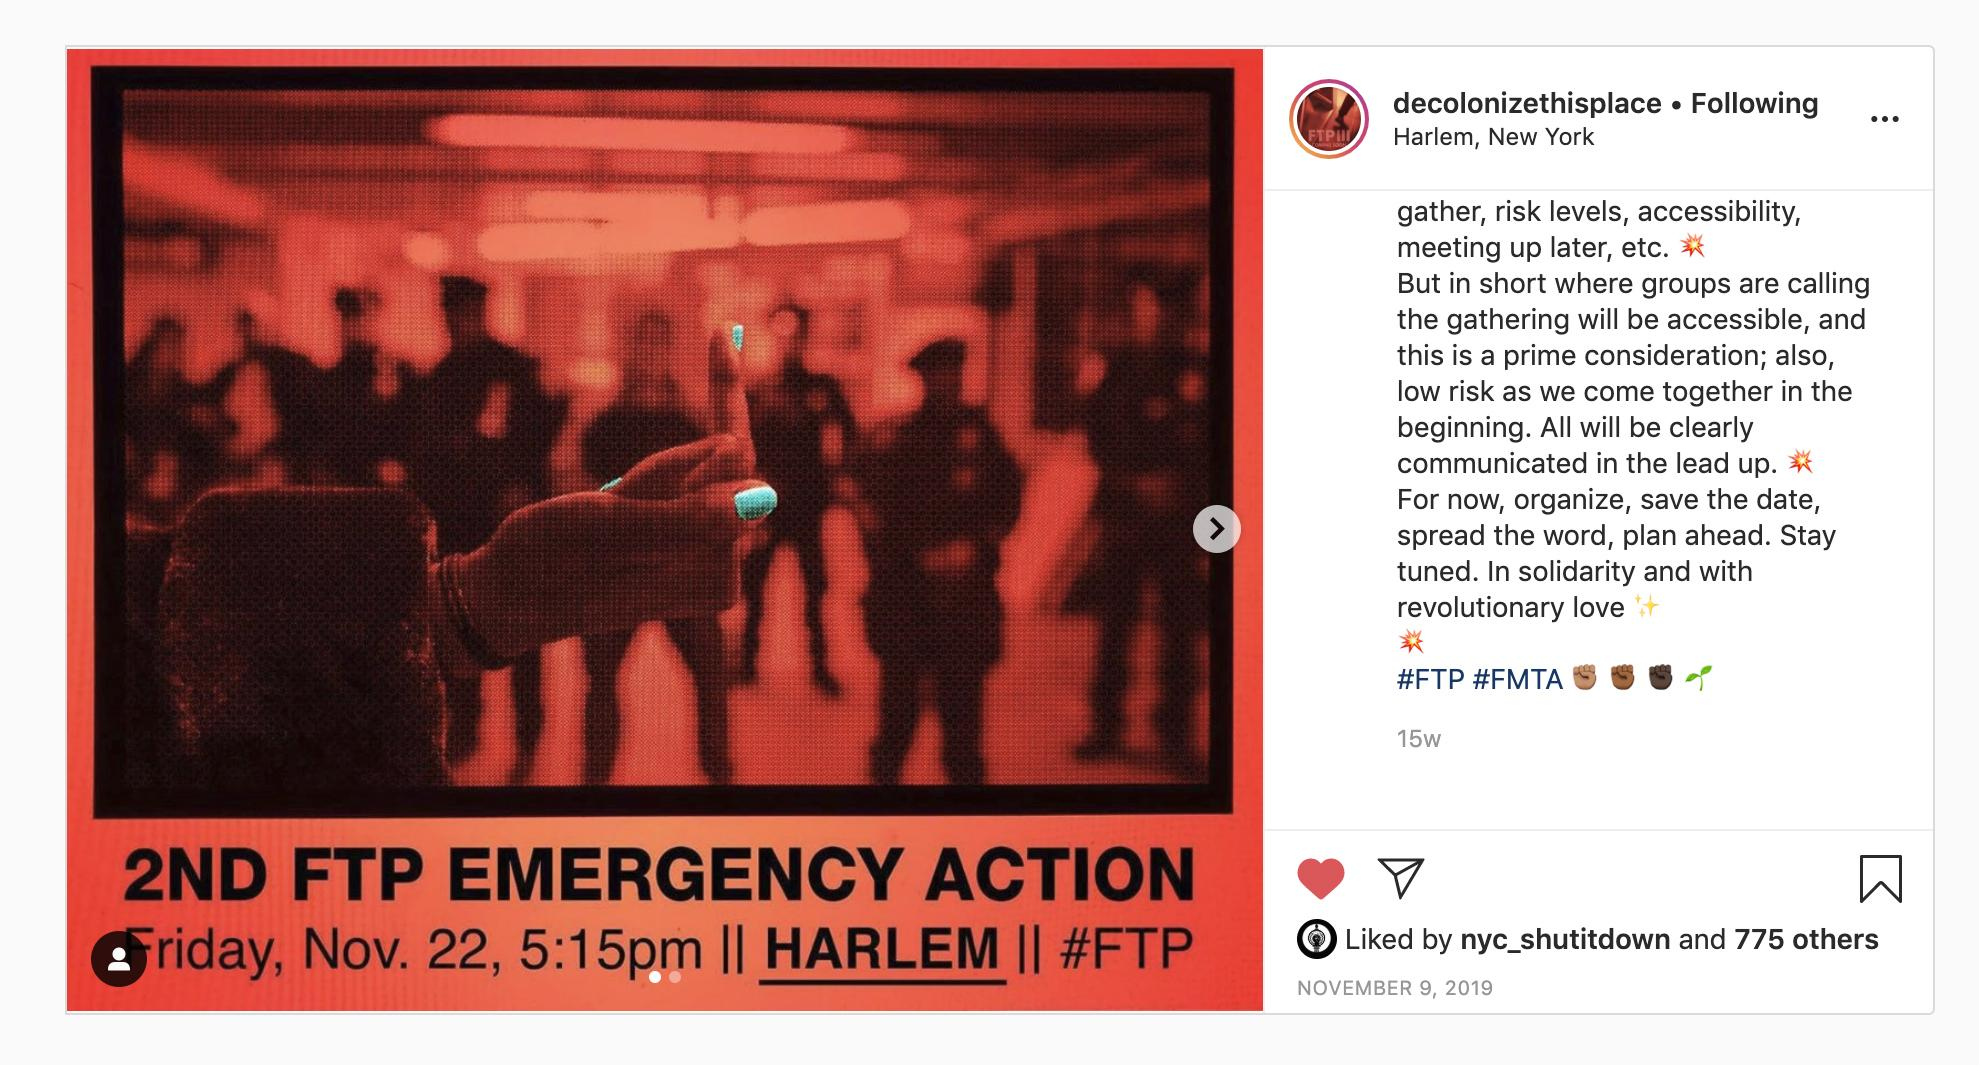 bonus: Screenshot of the Instagram account of the activist group Decolonize This Place, which shows one of the photos from this reportage being used to create propaganda for a second public intervention. source: https://www.instagram.com/decolonize.this.place/